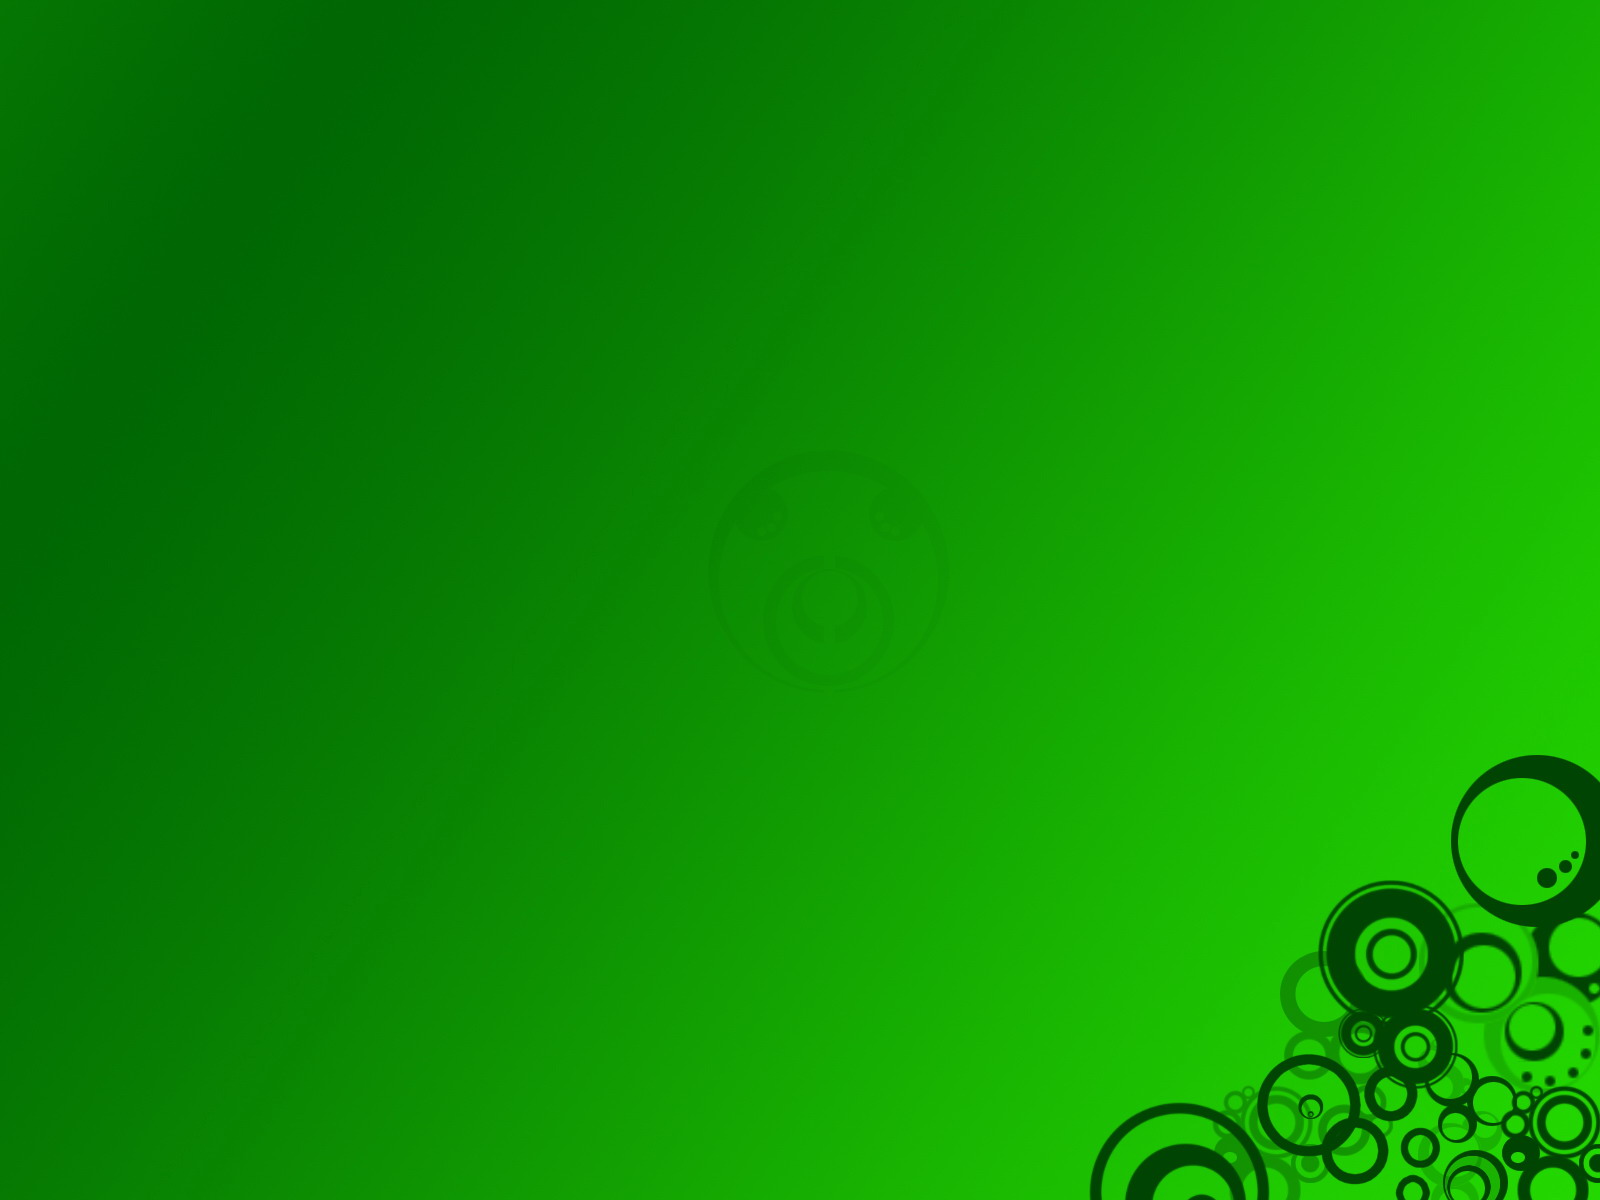 a place for free hd wallpapers desktop wallpapers green